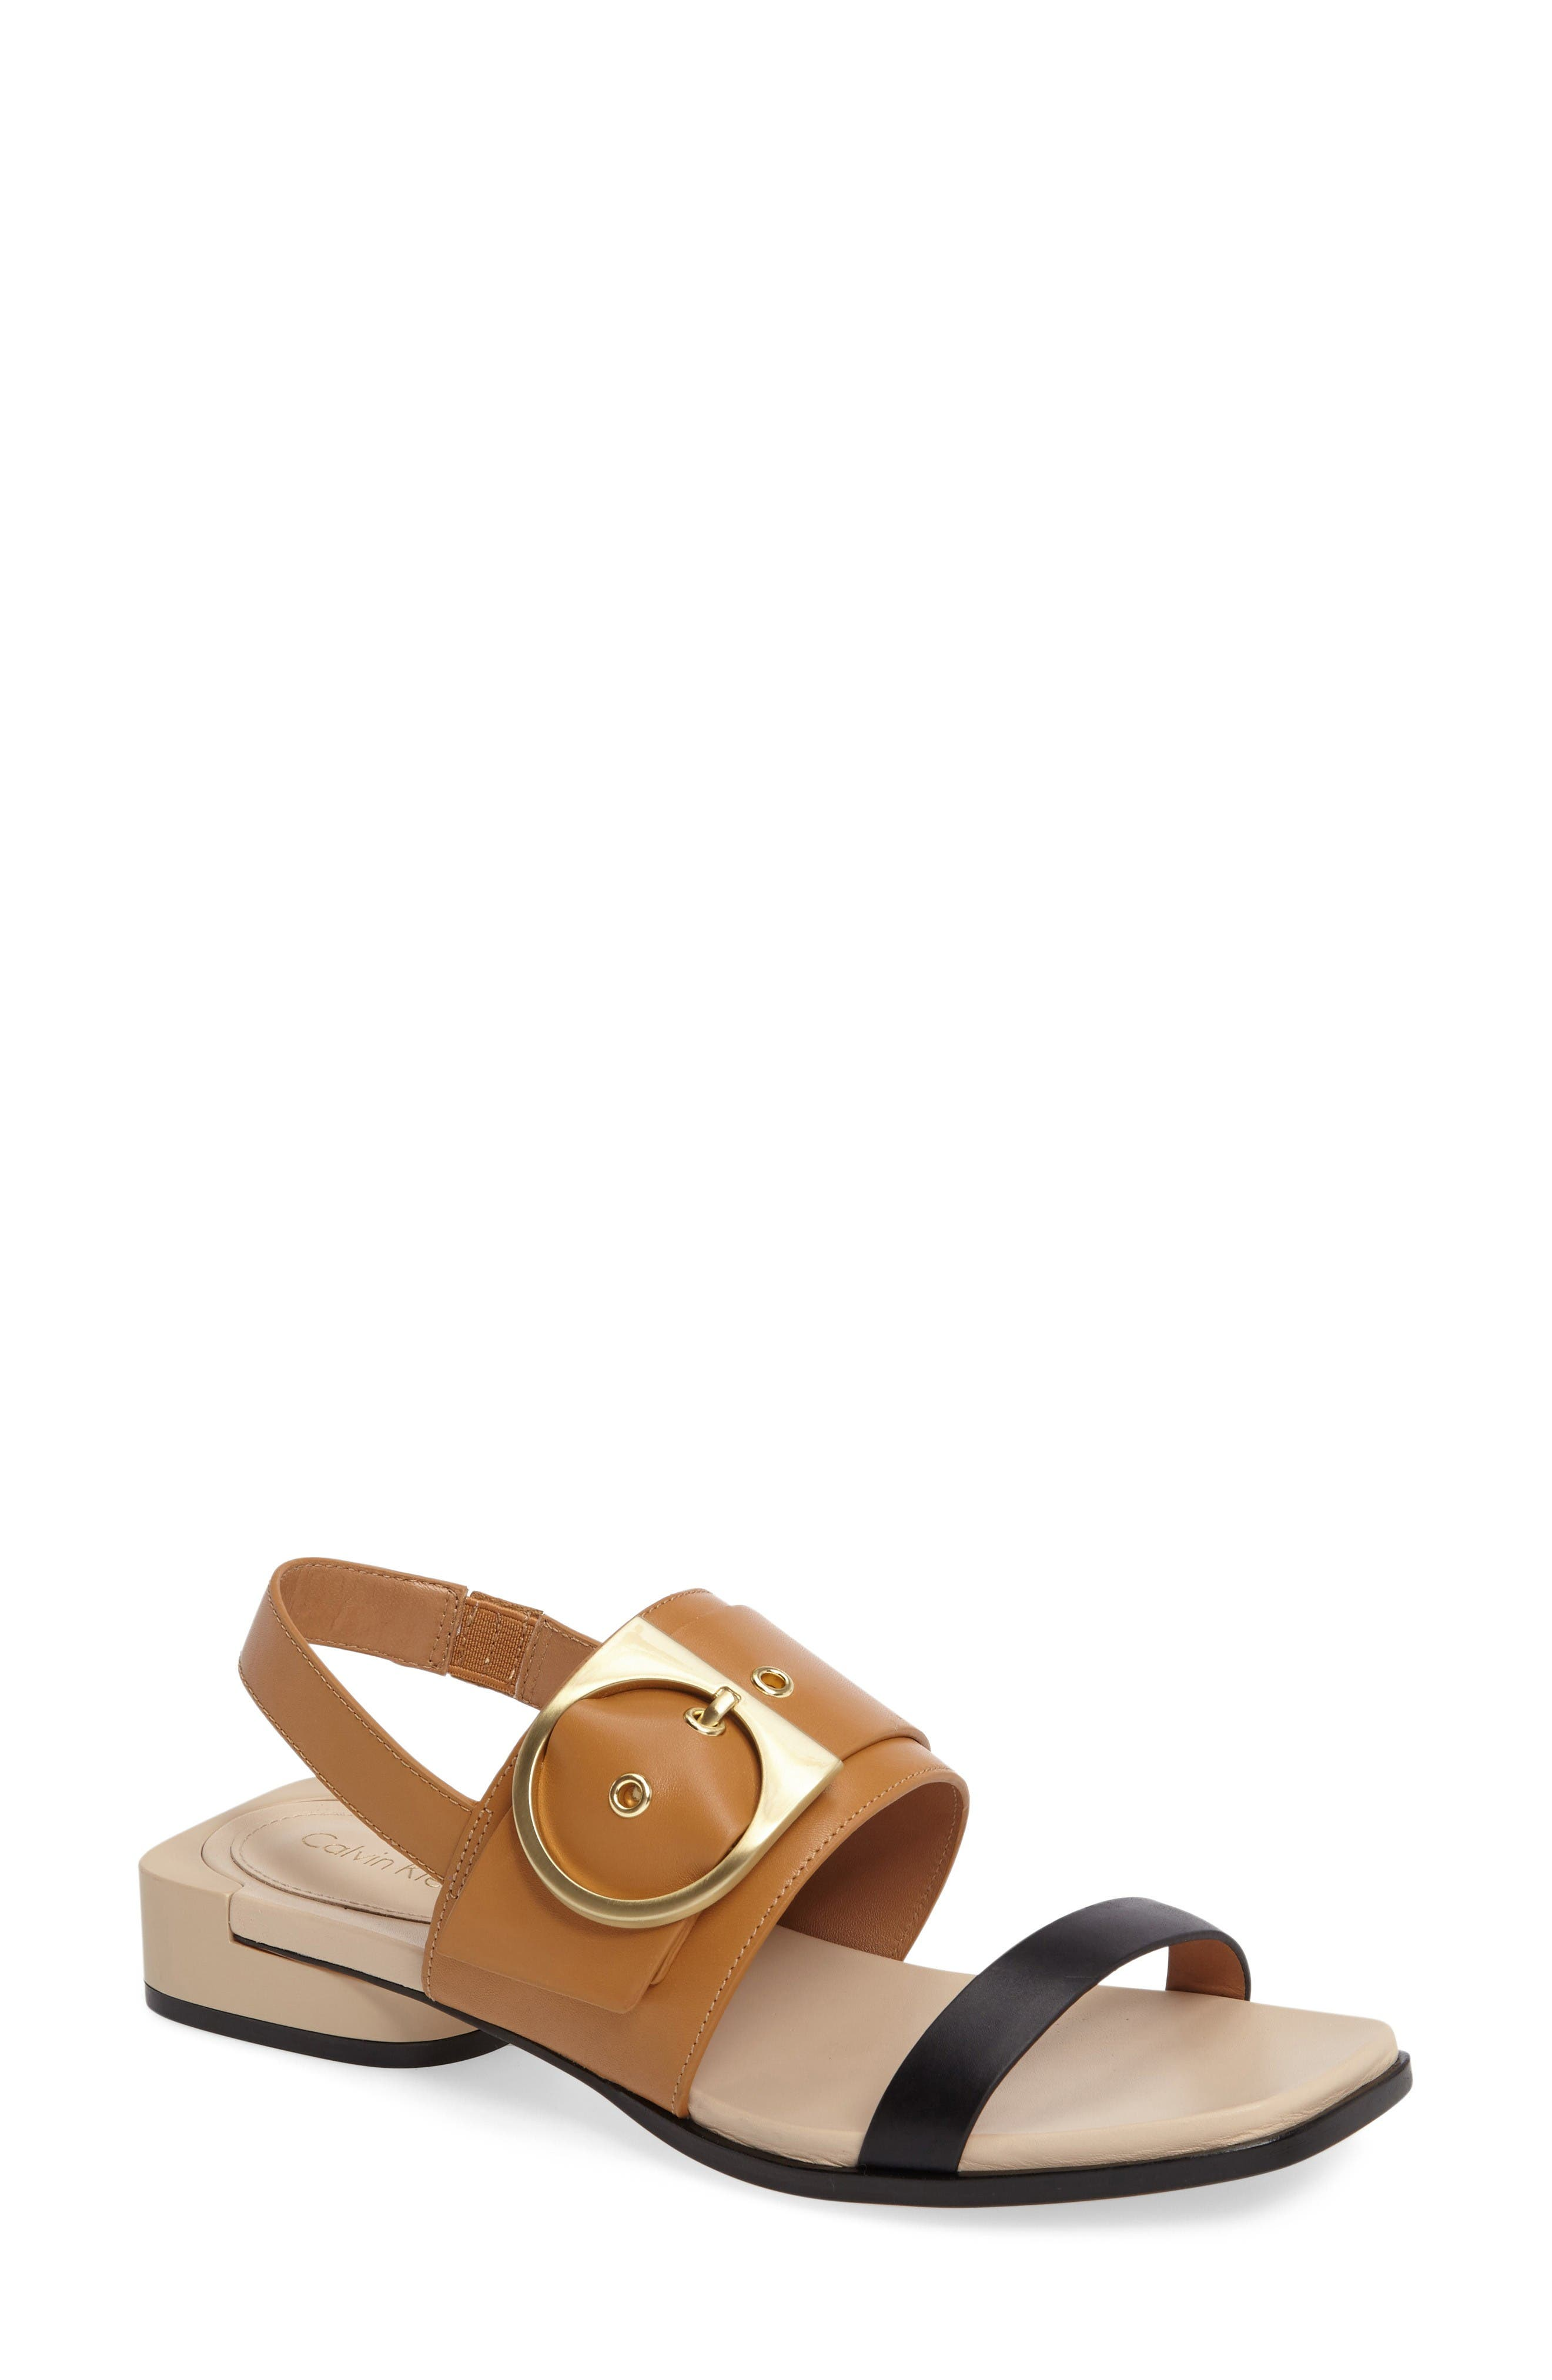 Abree Sandal,                         Main,                         color, Black/ Almond Leather